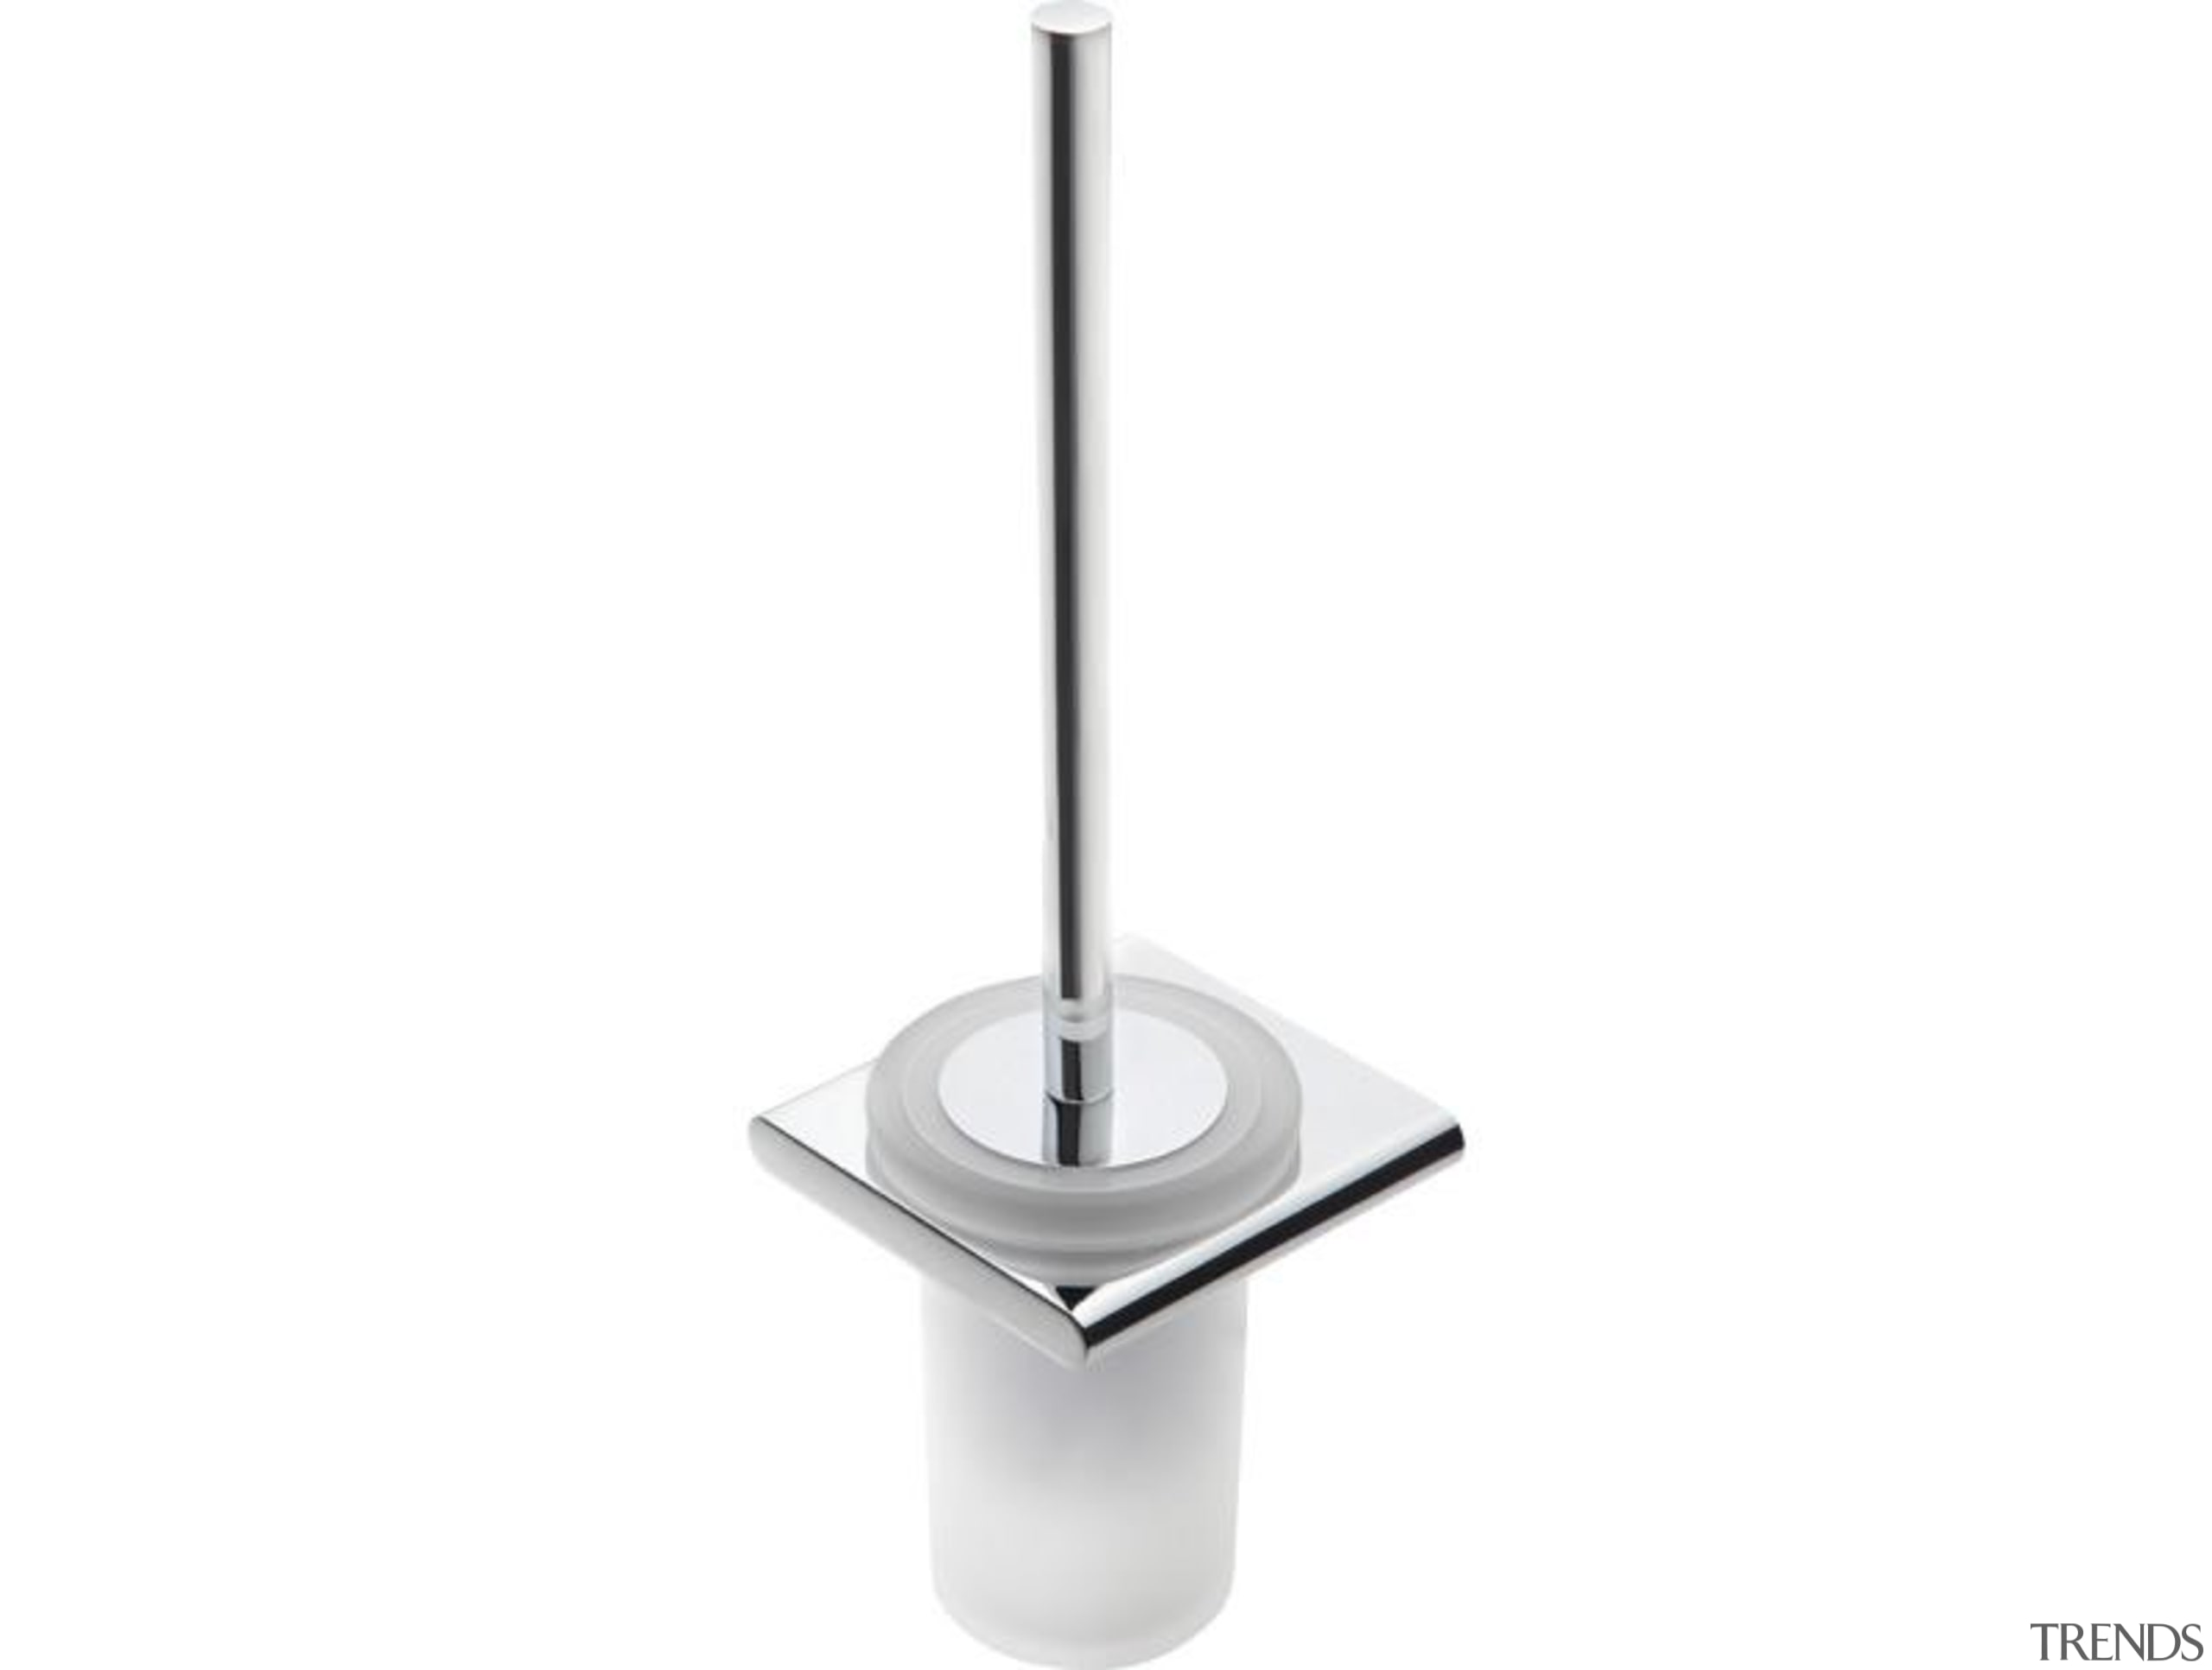 LOFT Wall Mounted Toilet Brush - LOFT Wall bathroom accessory, hardware, product design, white